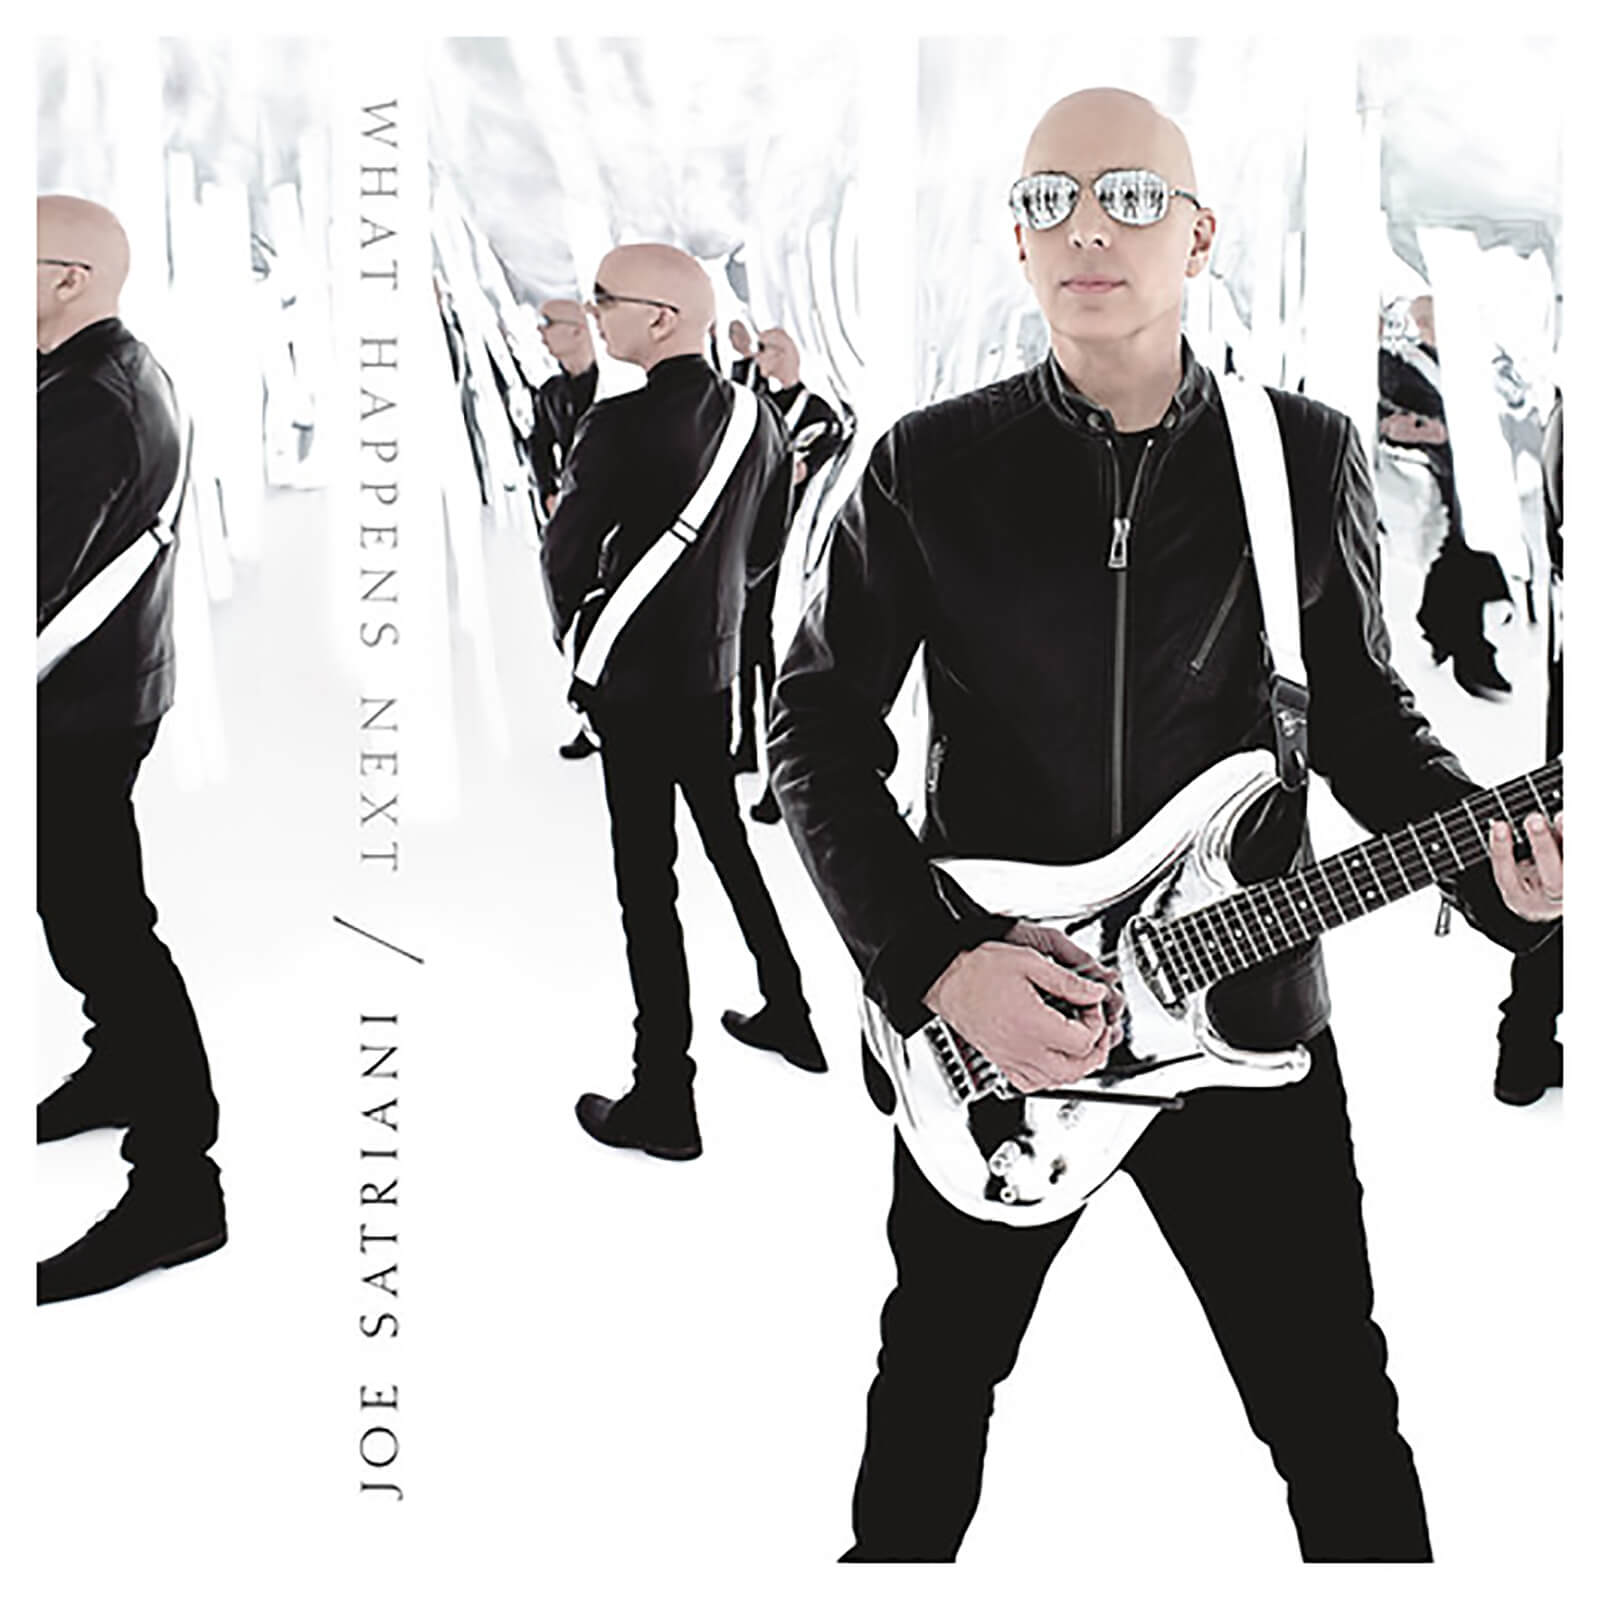 Joe Satriani - What Happens Next - Vinyl